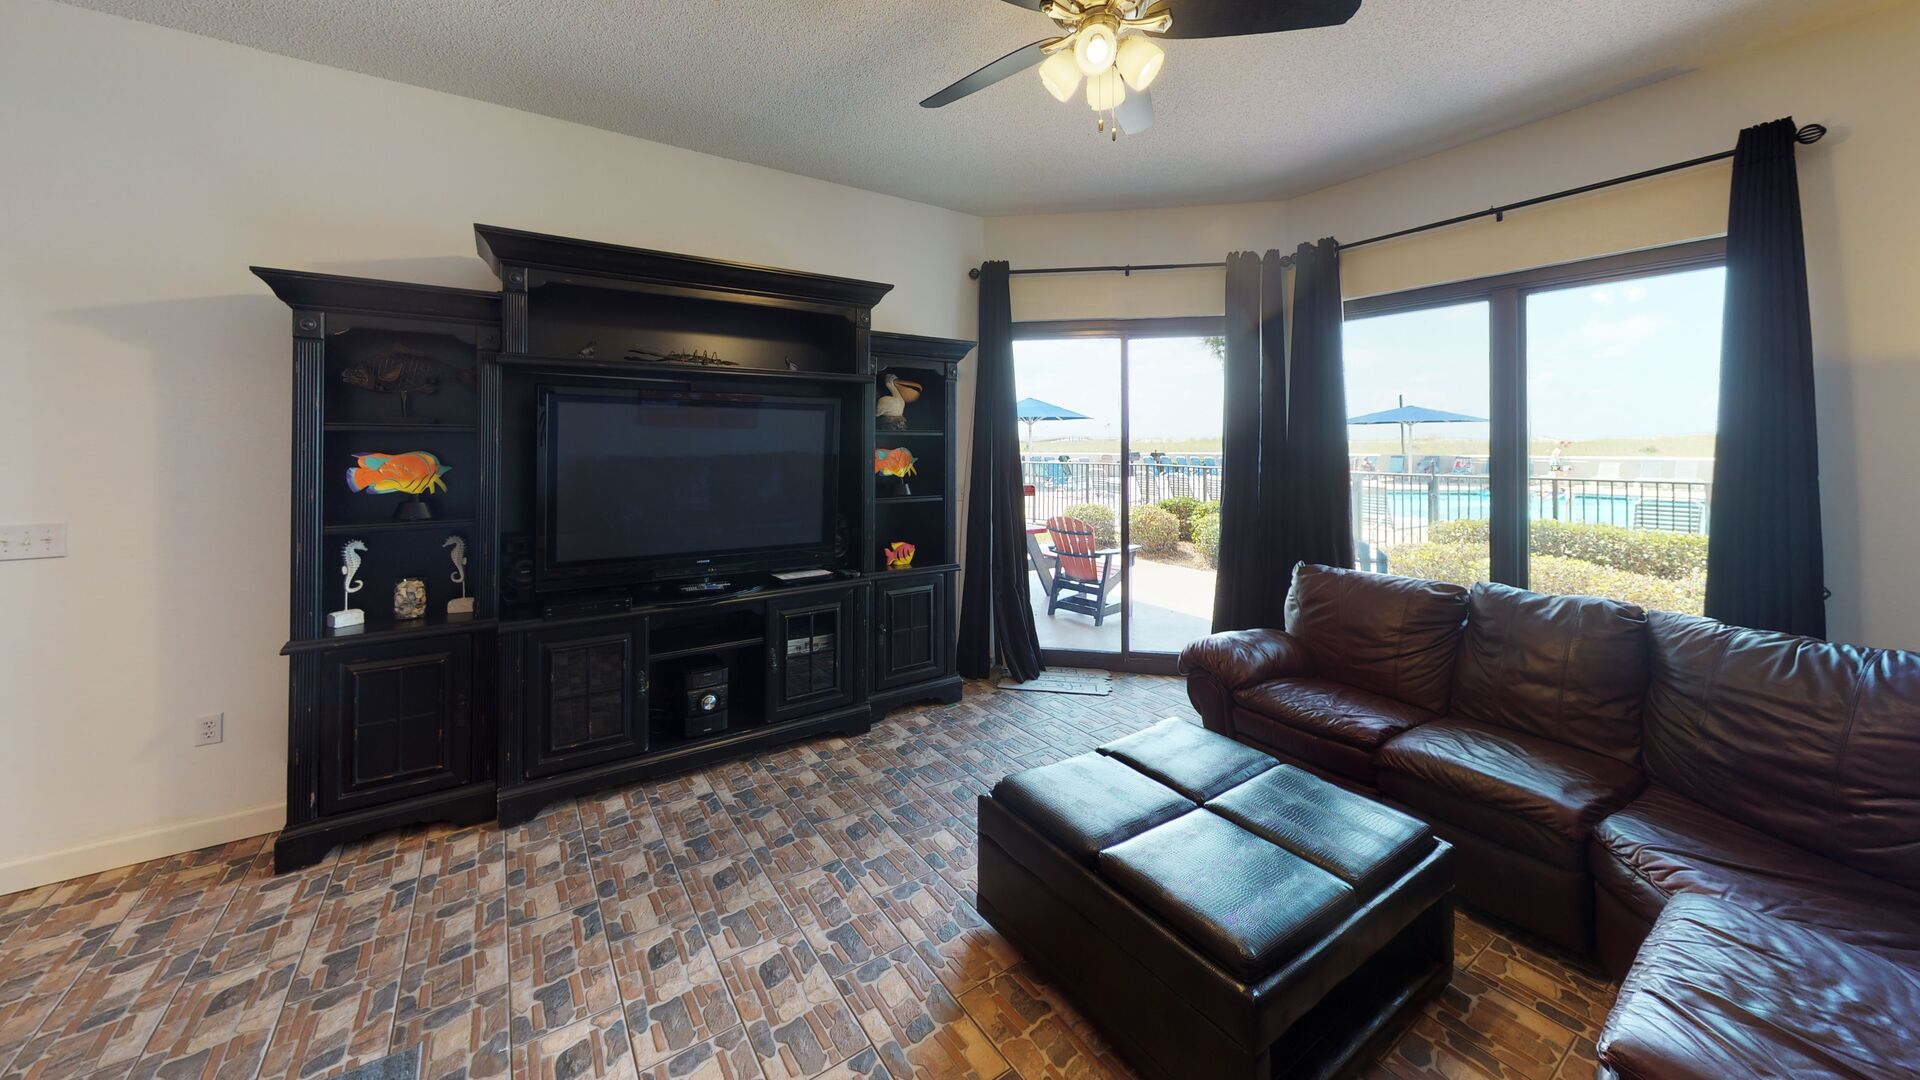 TV Entertainment Center, Sliding Doors to the Porch, and Sectional Sofa.